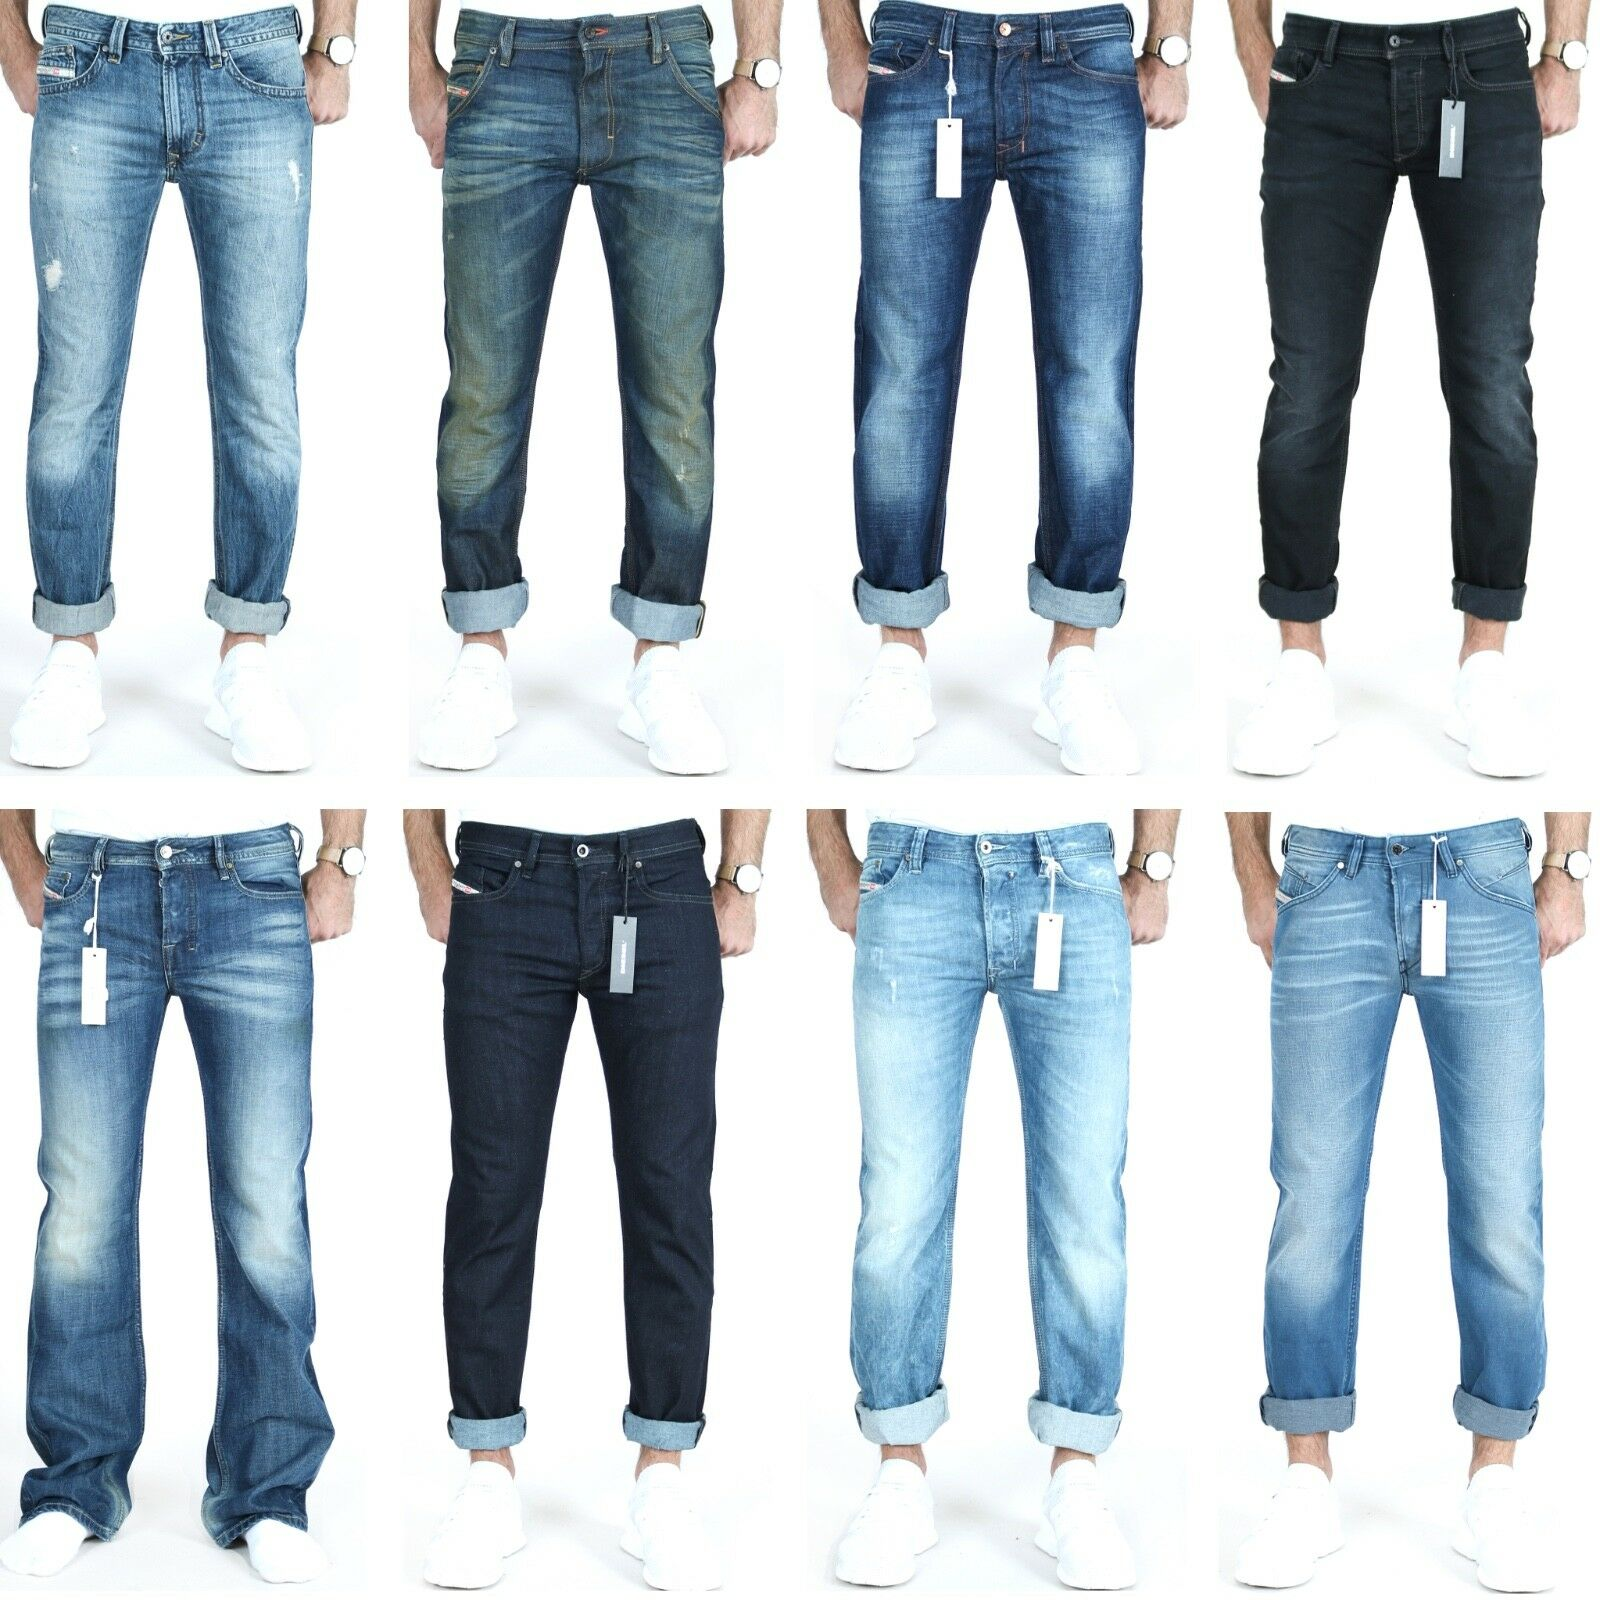 Diesel Men's Jeans Sale Various Models in Size W27-W30 Sale